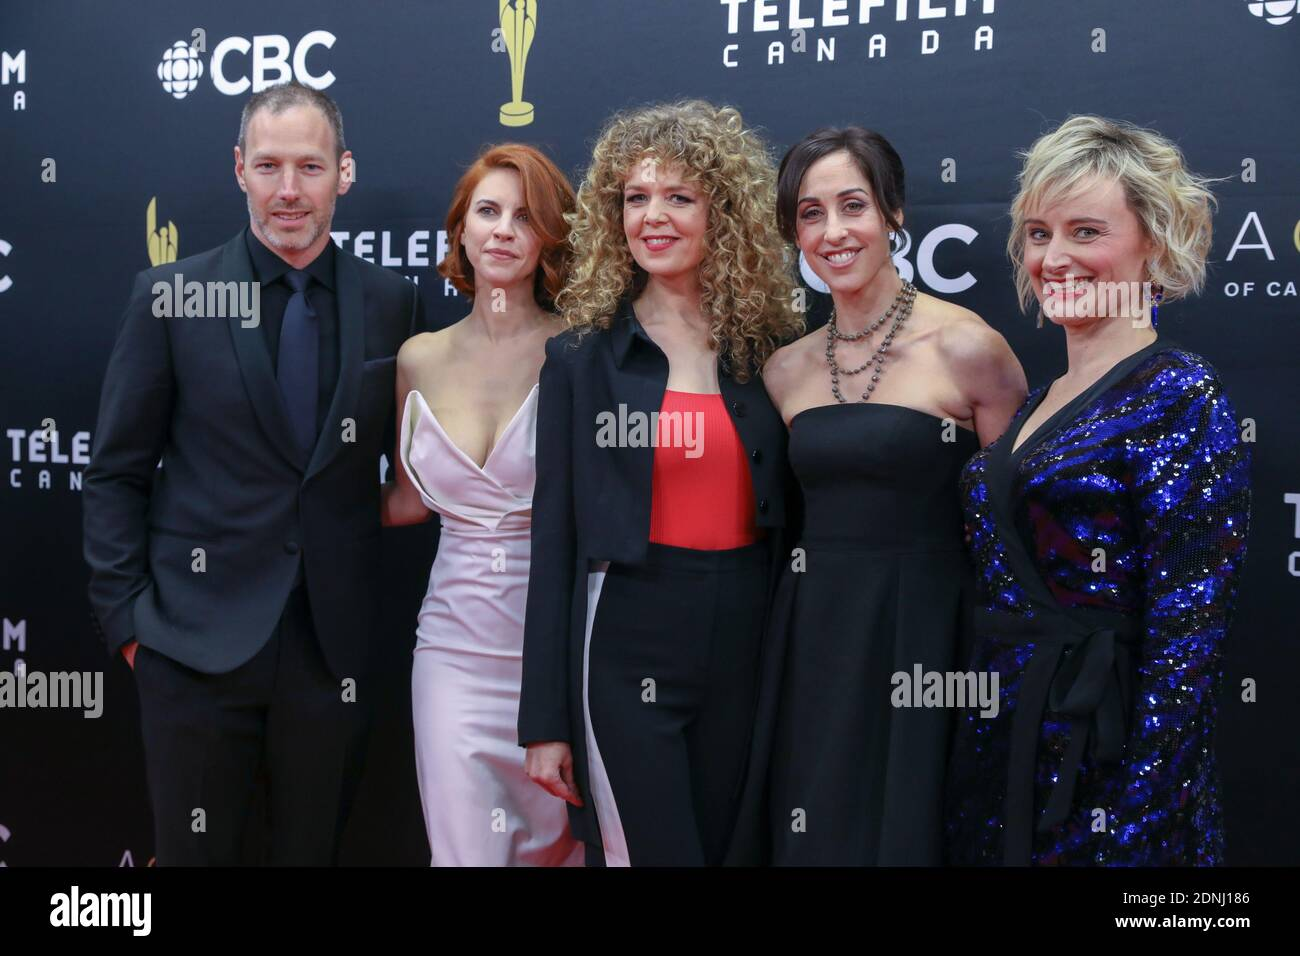 Juno Rinaldi High Resolution Stock Photography And Images Alamy Juno ruddell on workin' moms season 1. https www alamy com phillip sternberg dani kind juno rinaldi catherine reitman and sarah mcvie attend the 2019 canadian screen awards broadcast gala at meridian hall in toronto image391932022 html